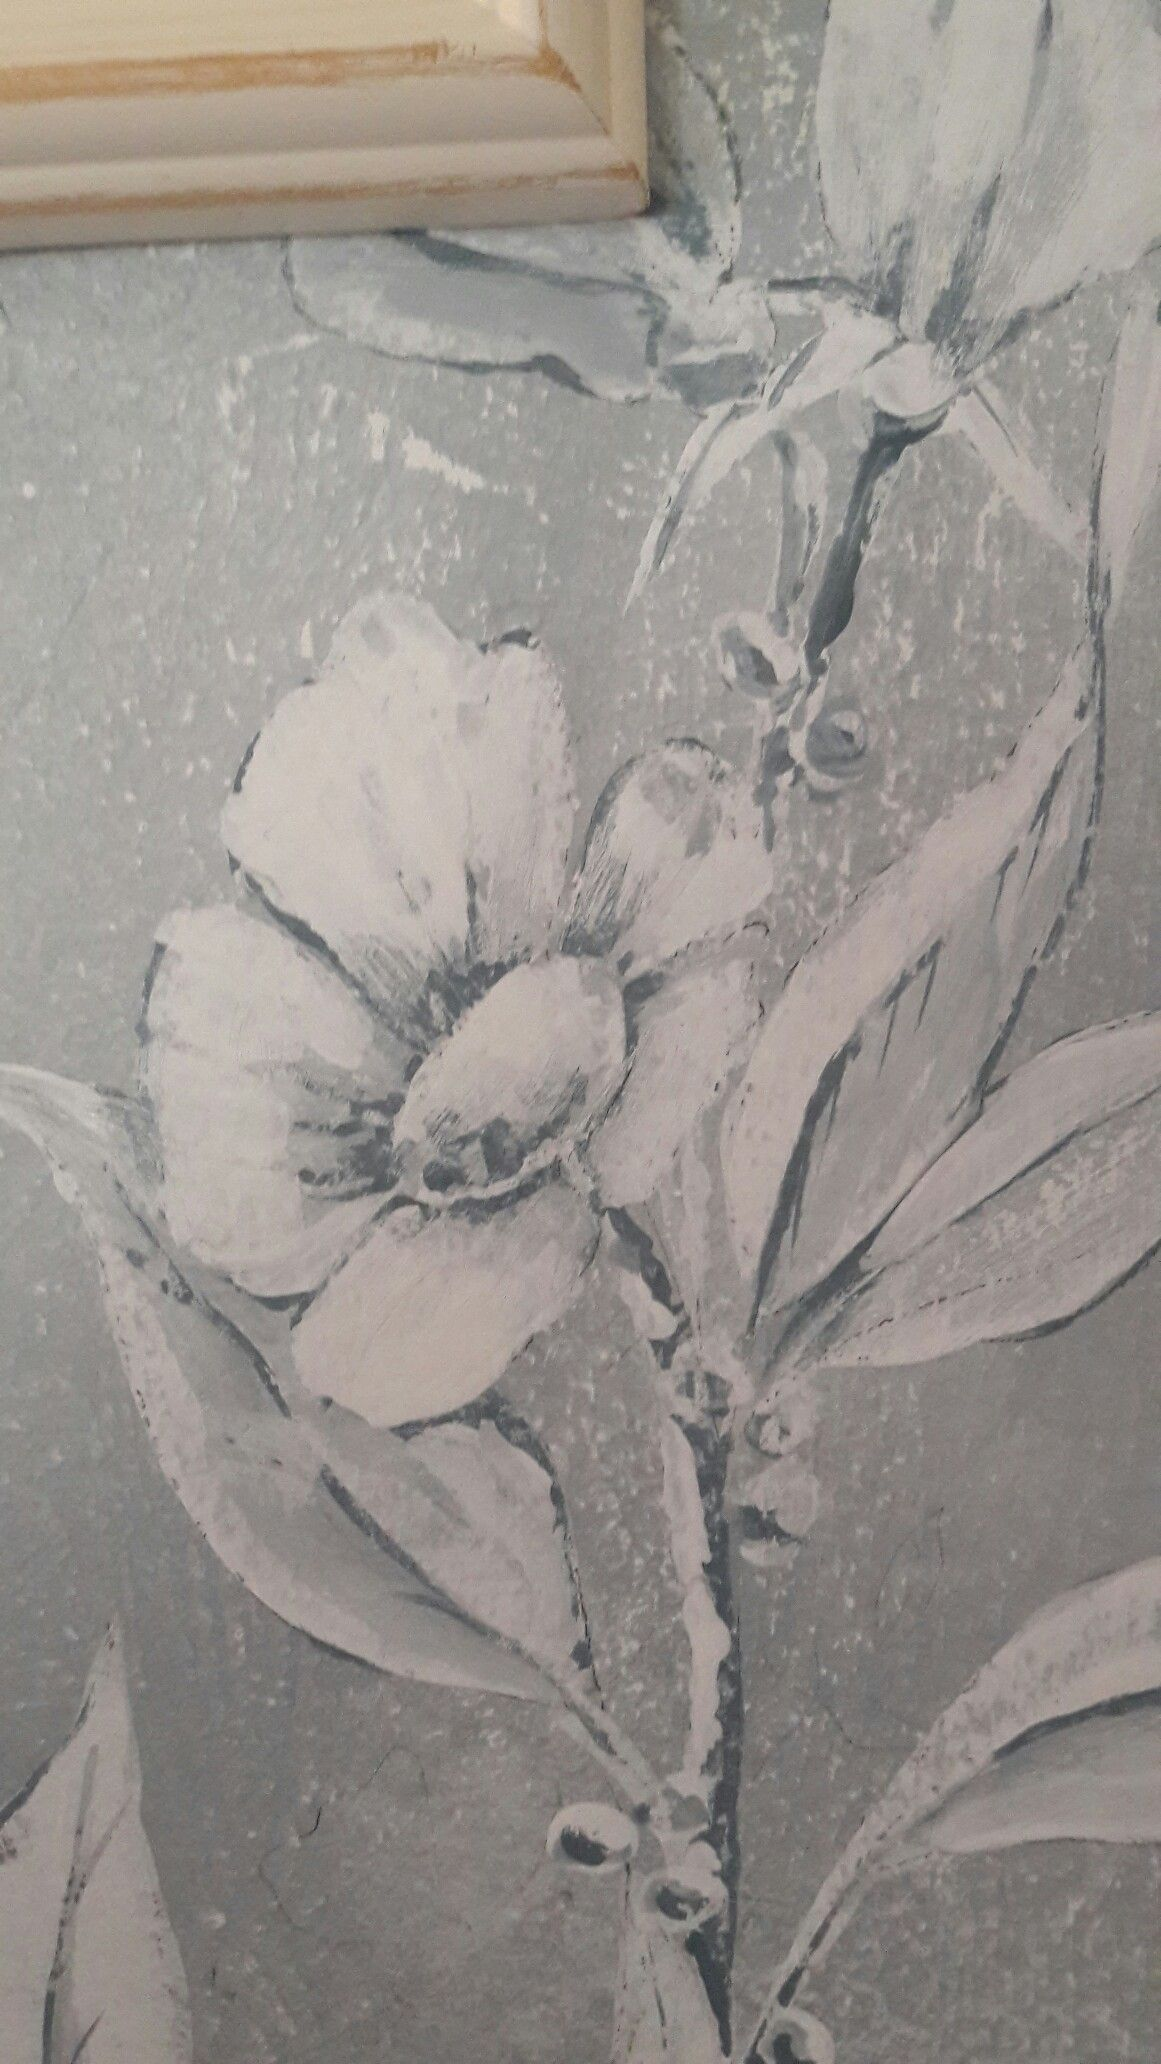 Detail, chinoiserie inspired walls, distressed to give an aged feel.